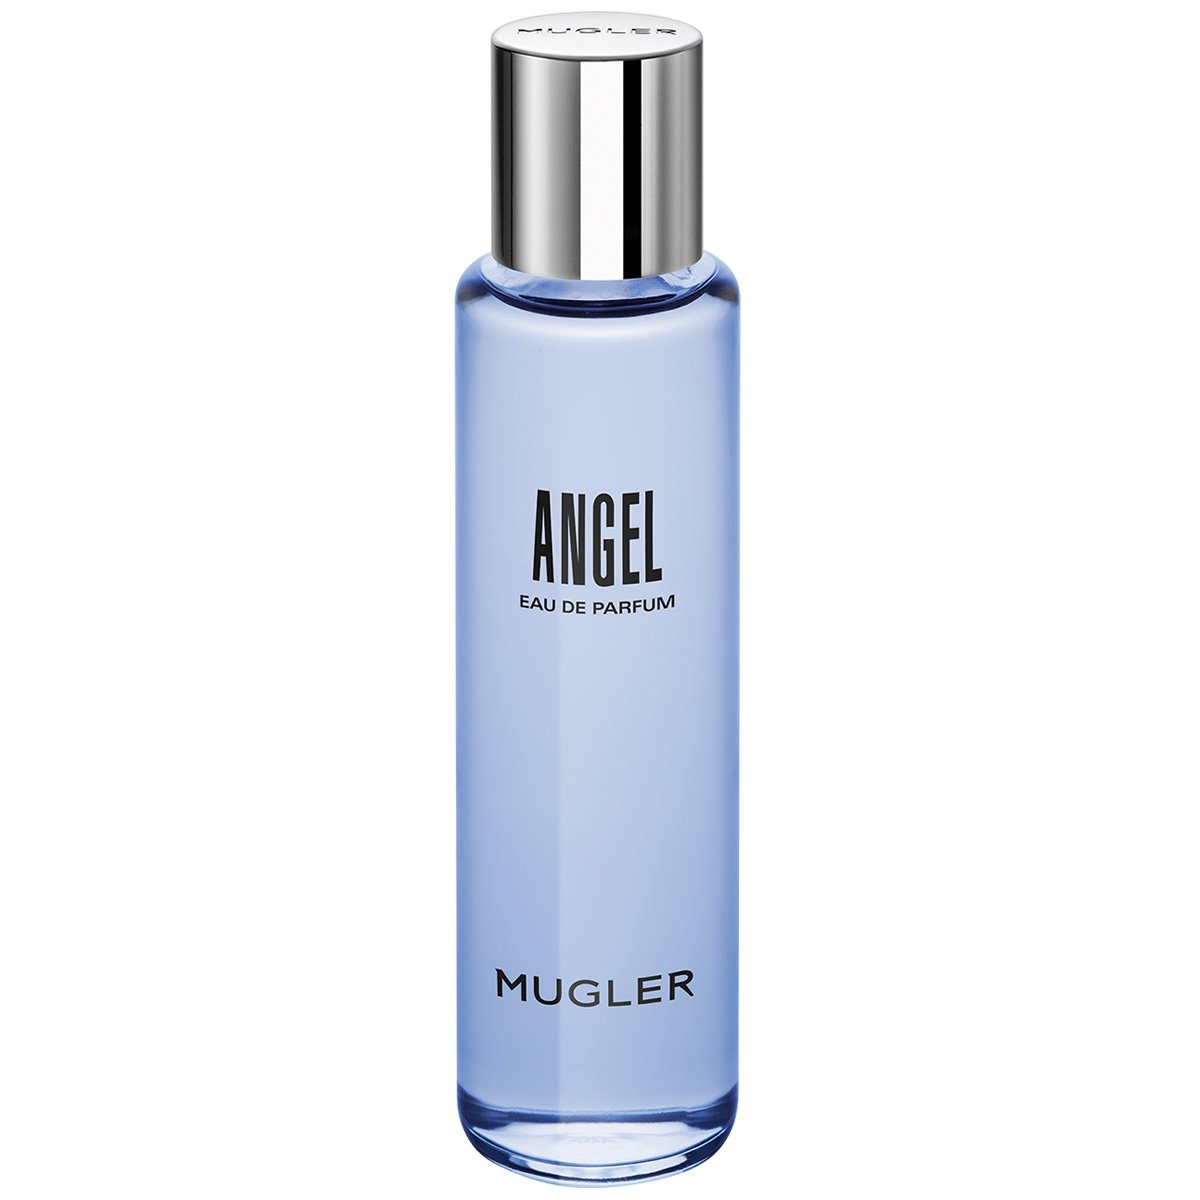 Angel Eau de Parfum Flacon Source - MUGLER